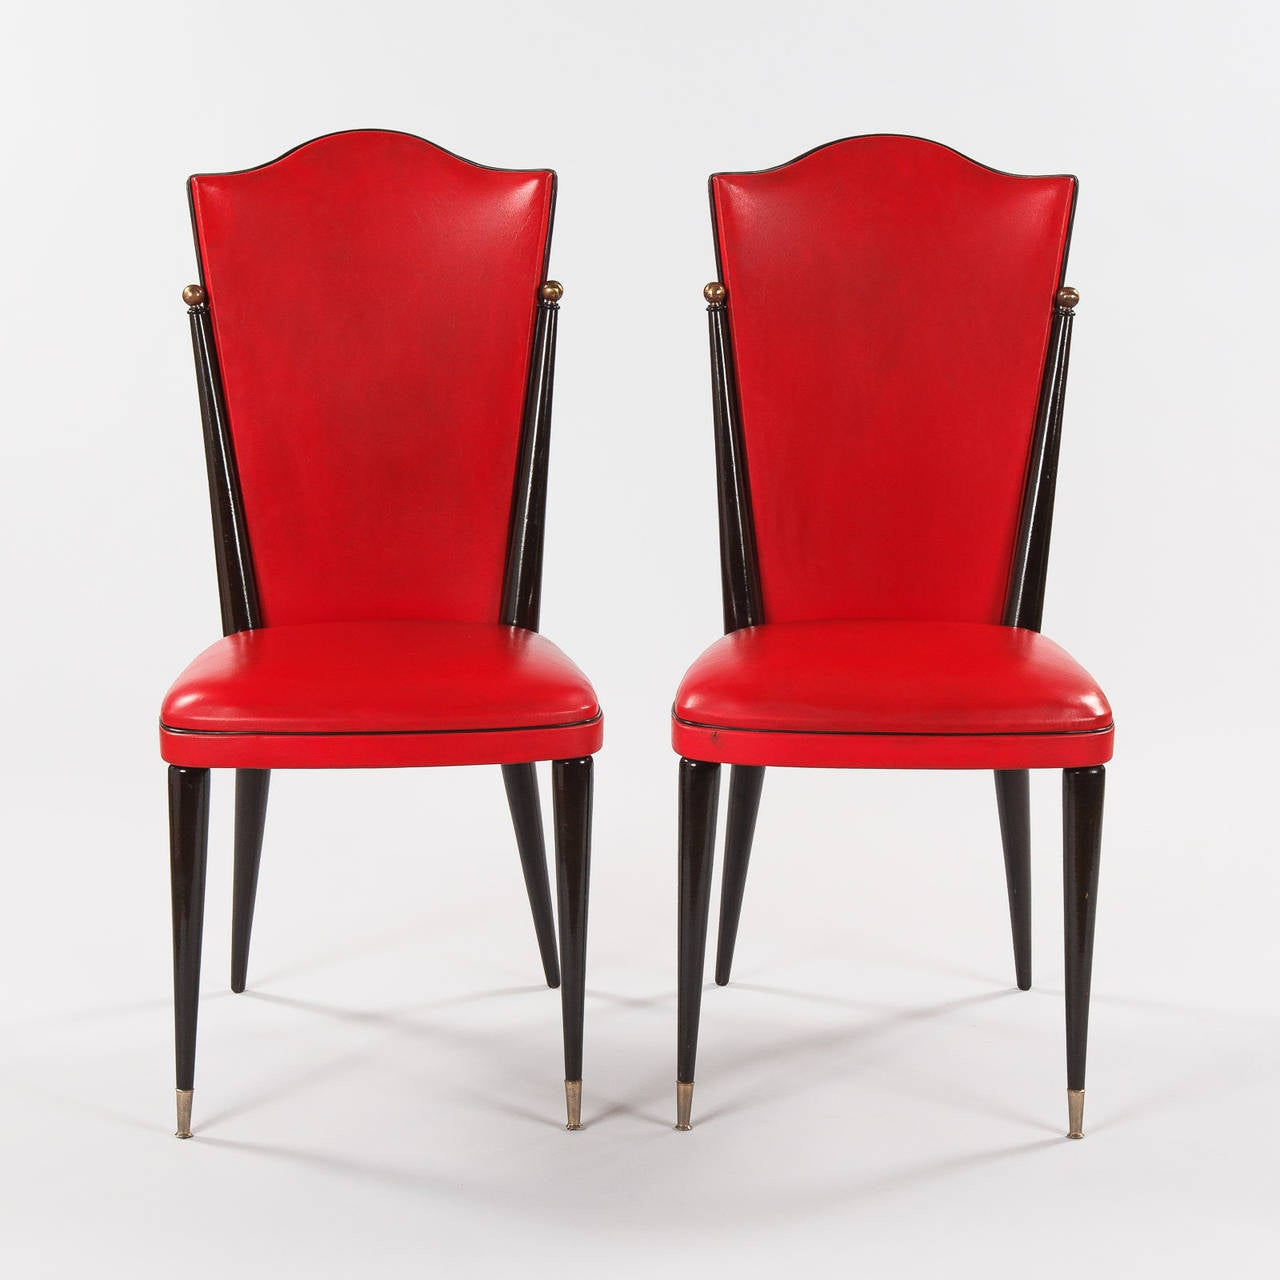 red chairs for sale chair cushion covers diy pair of vintage french vinyl side 1960s